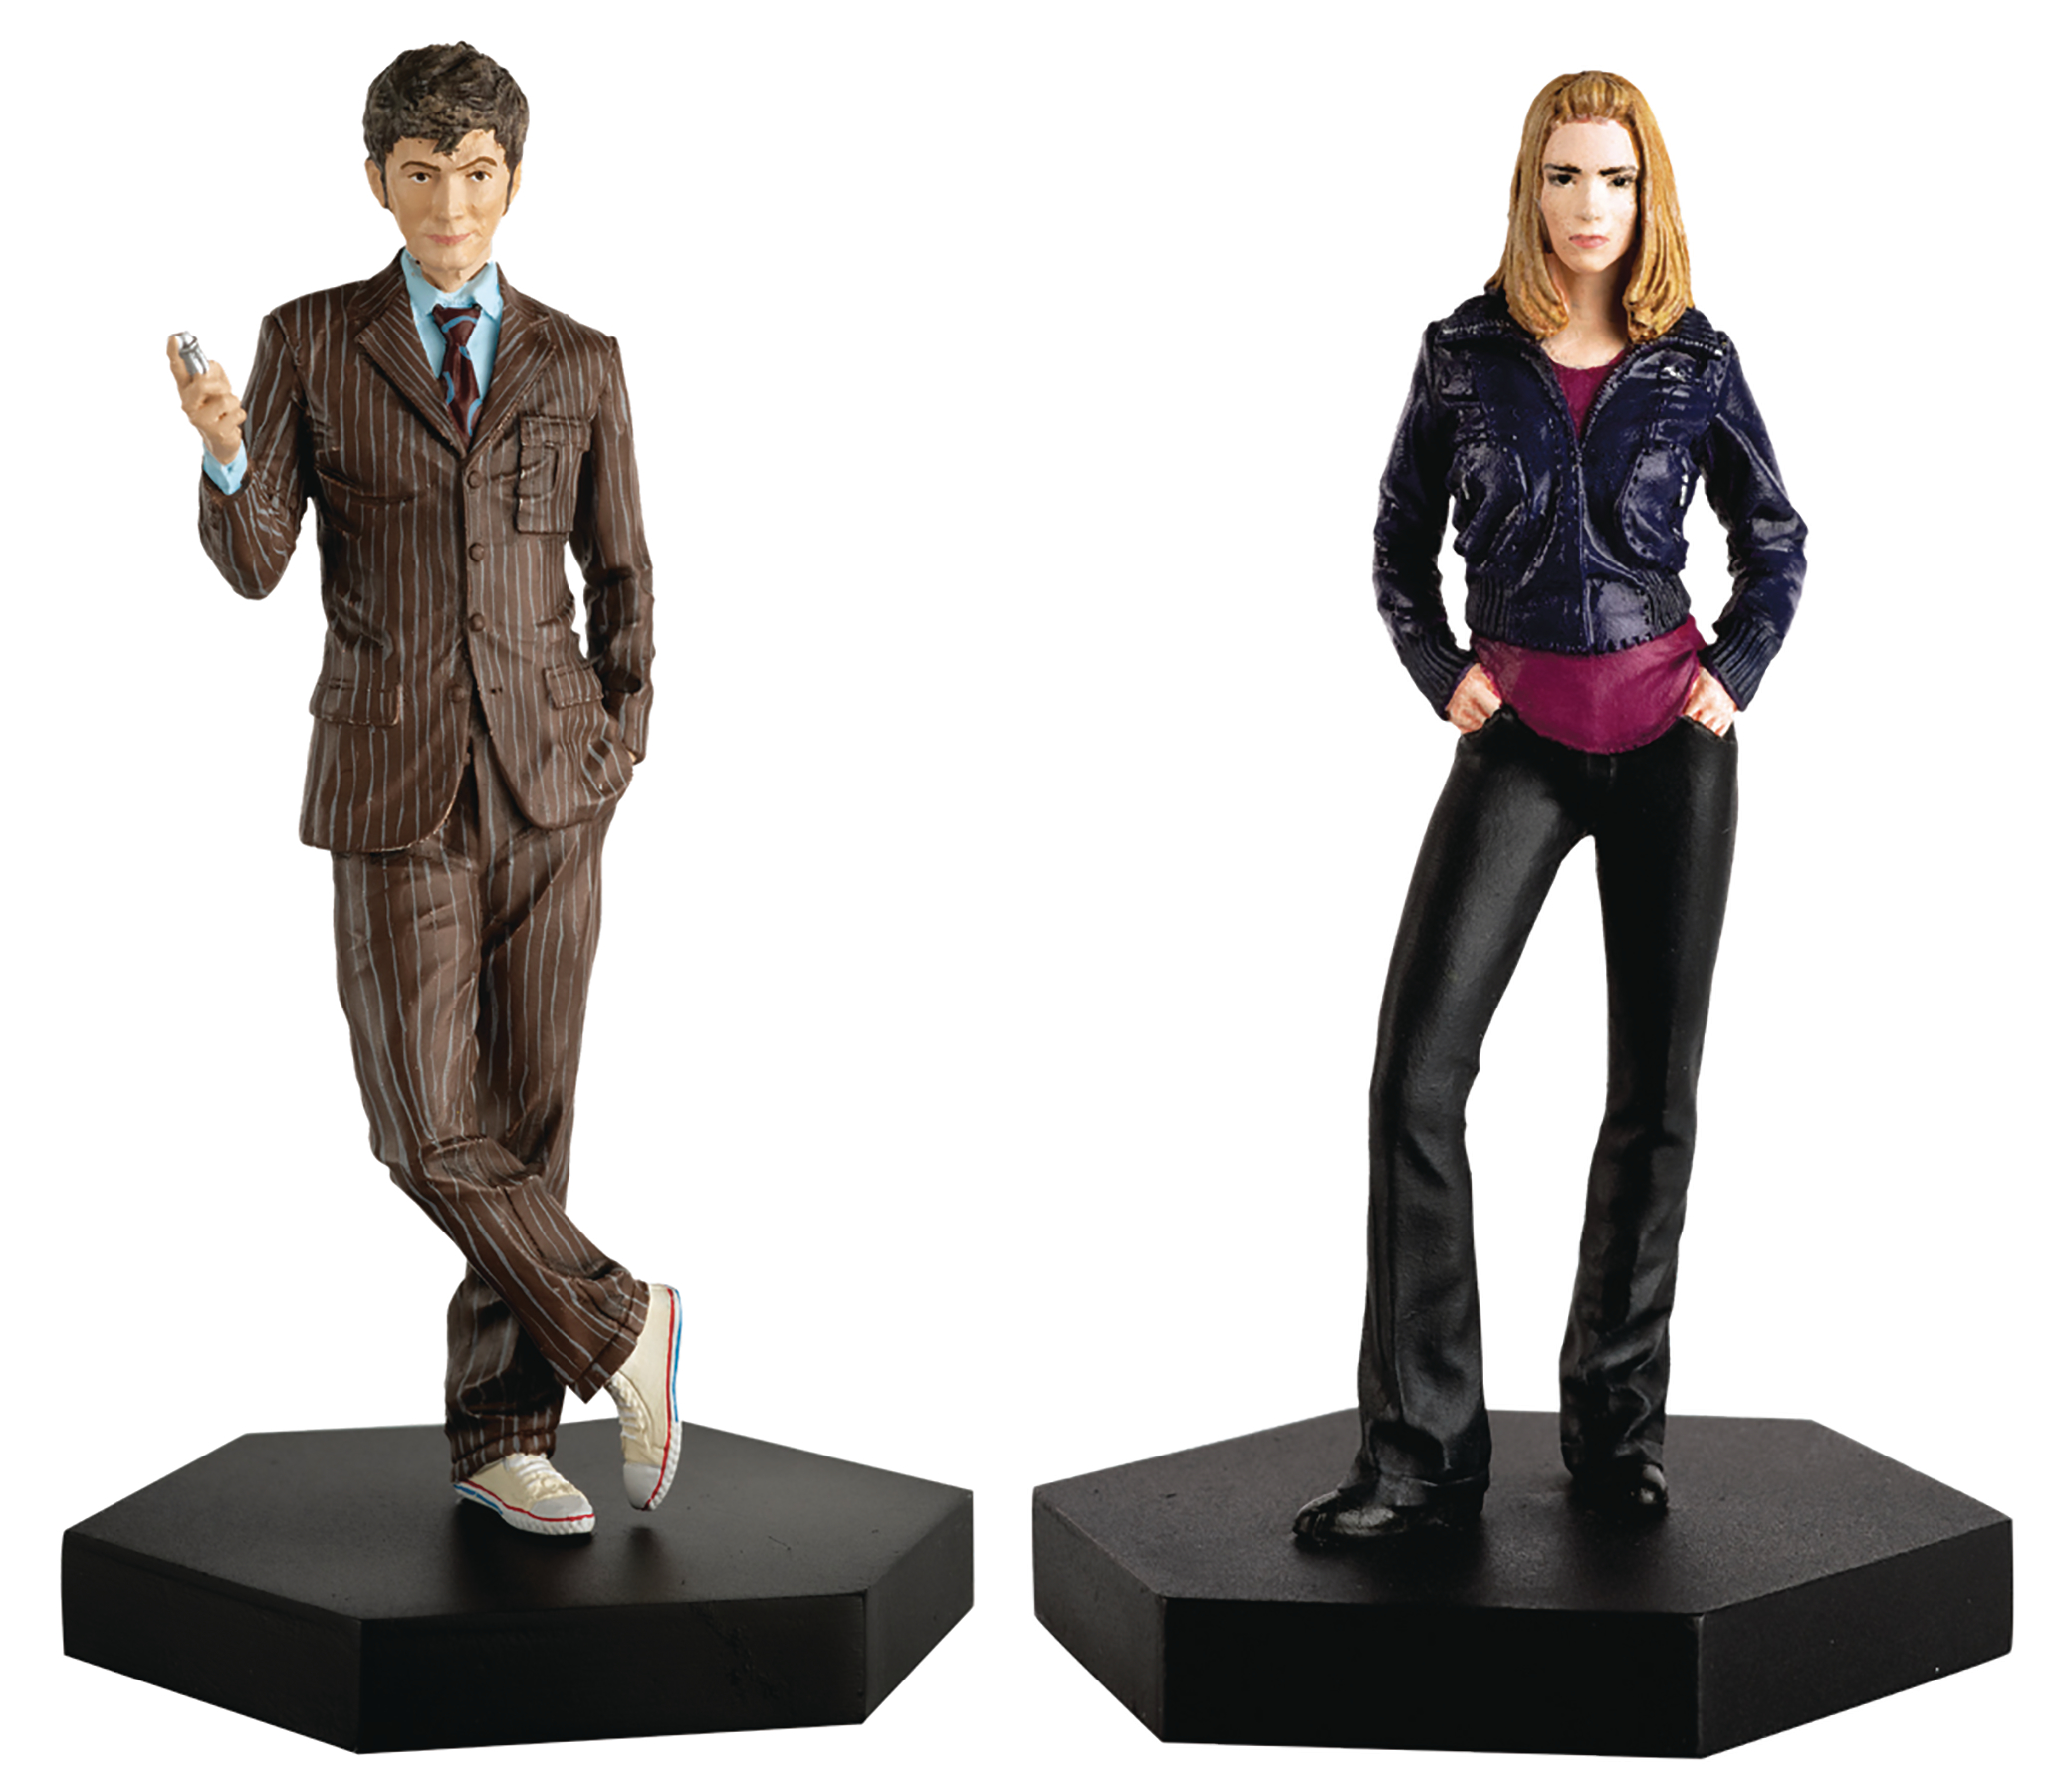 DOCTOR WHO FIG COLL COMPANION SET #2 TENTH DOCTOR & ROSE TYL